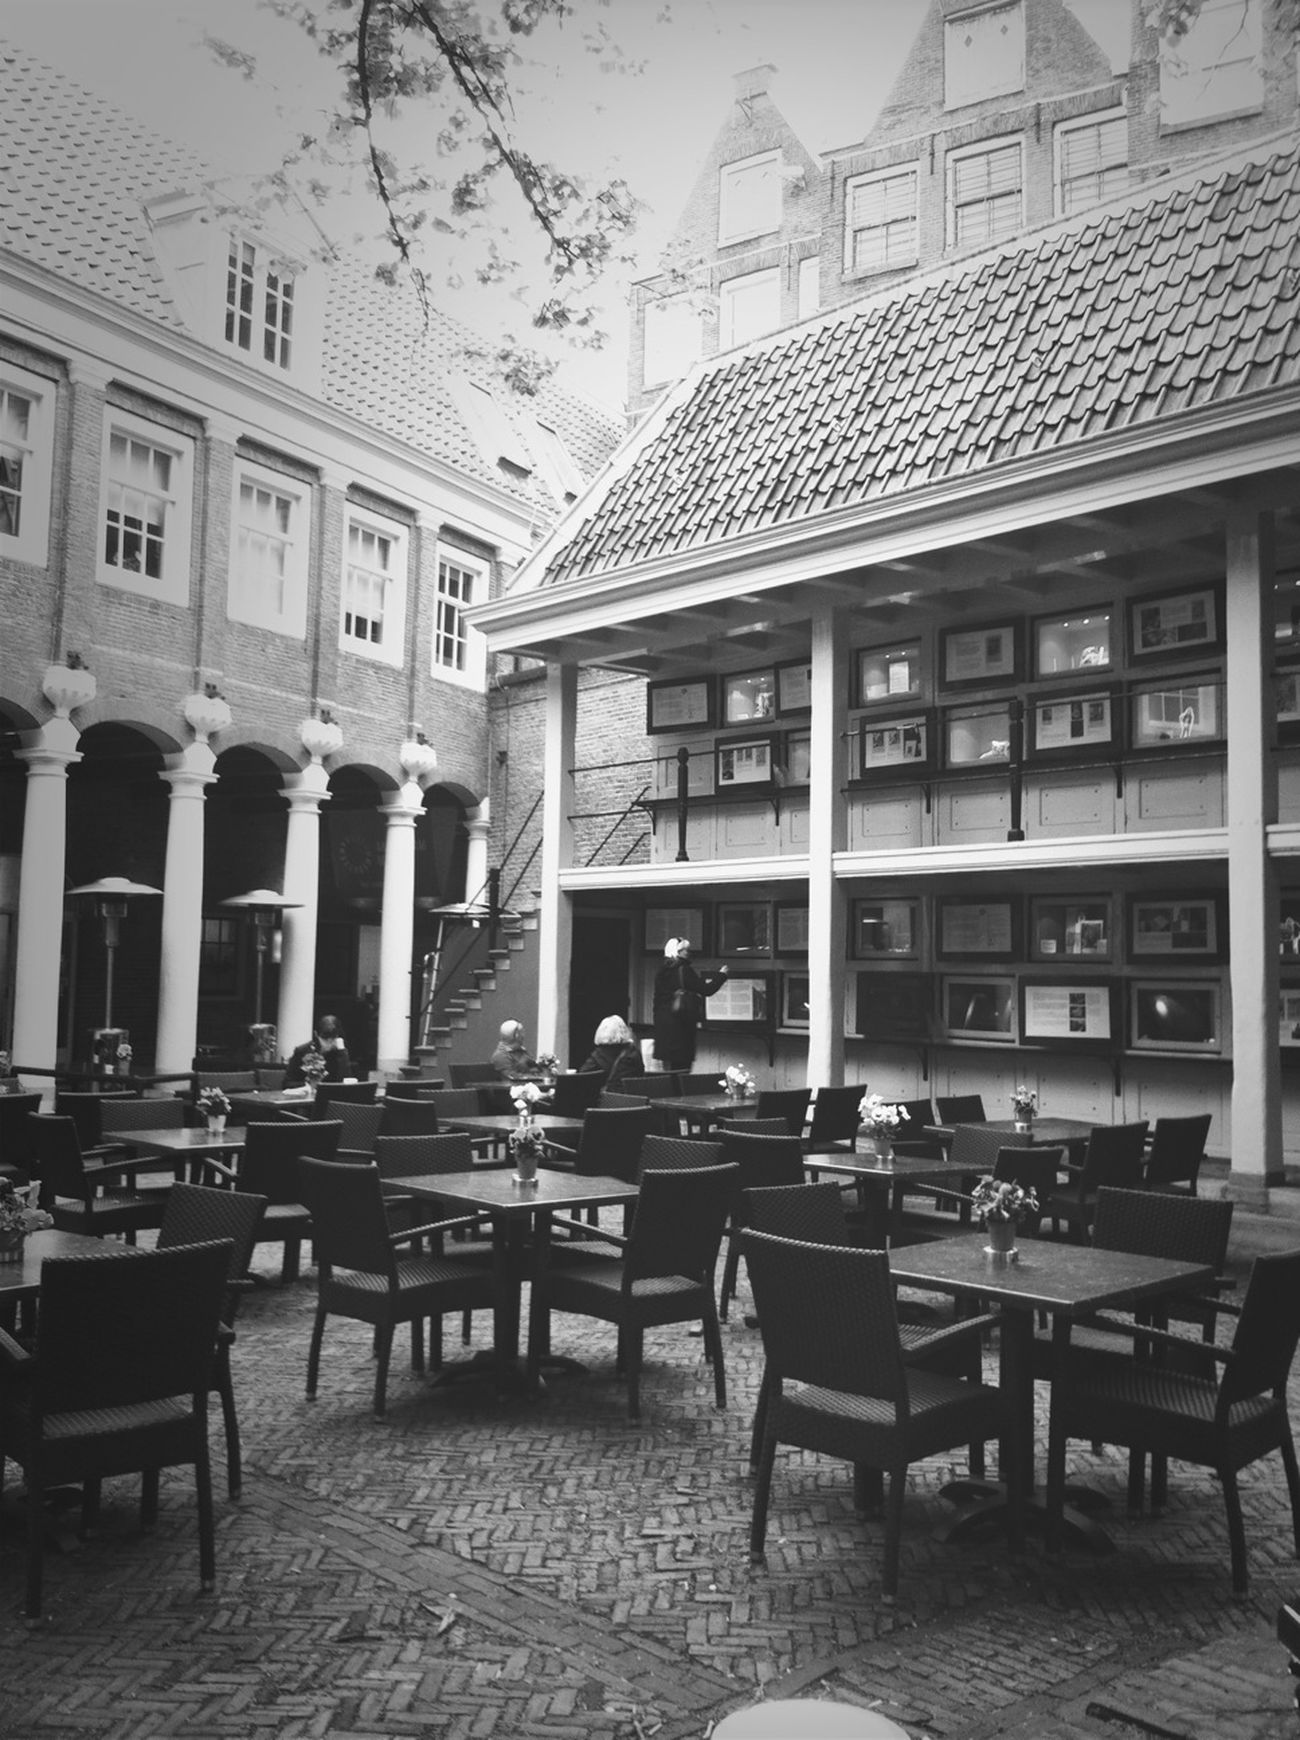 Architecture Blackandwhite Bnw_collection AMPt - Cafe Culture